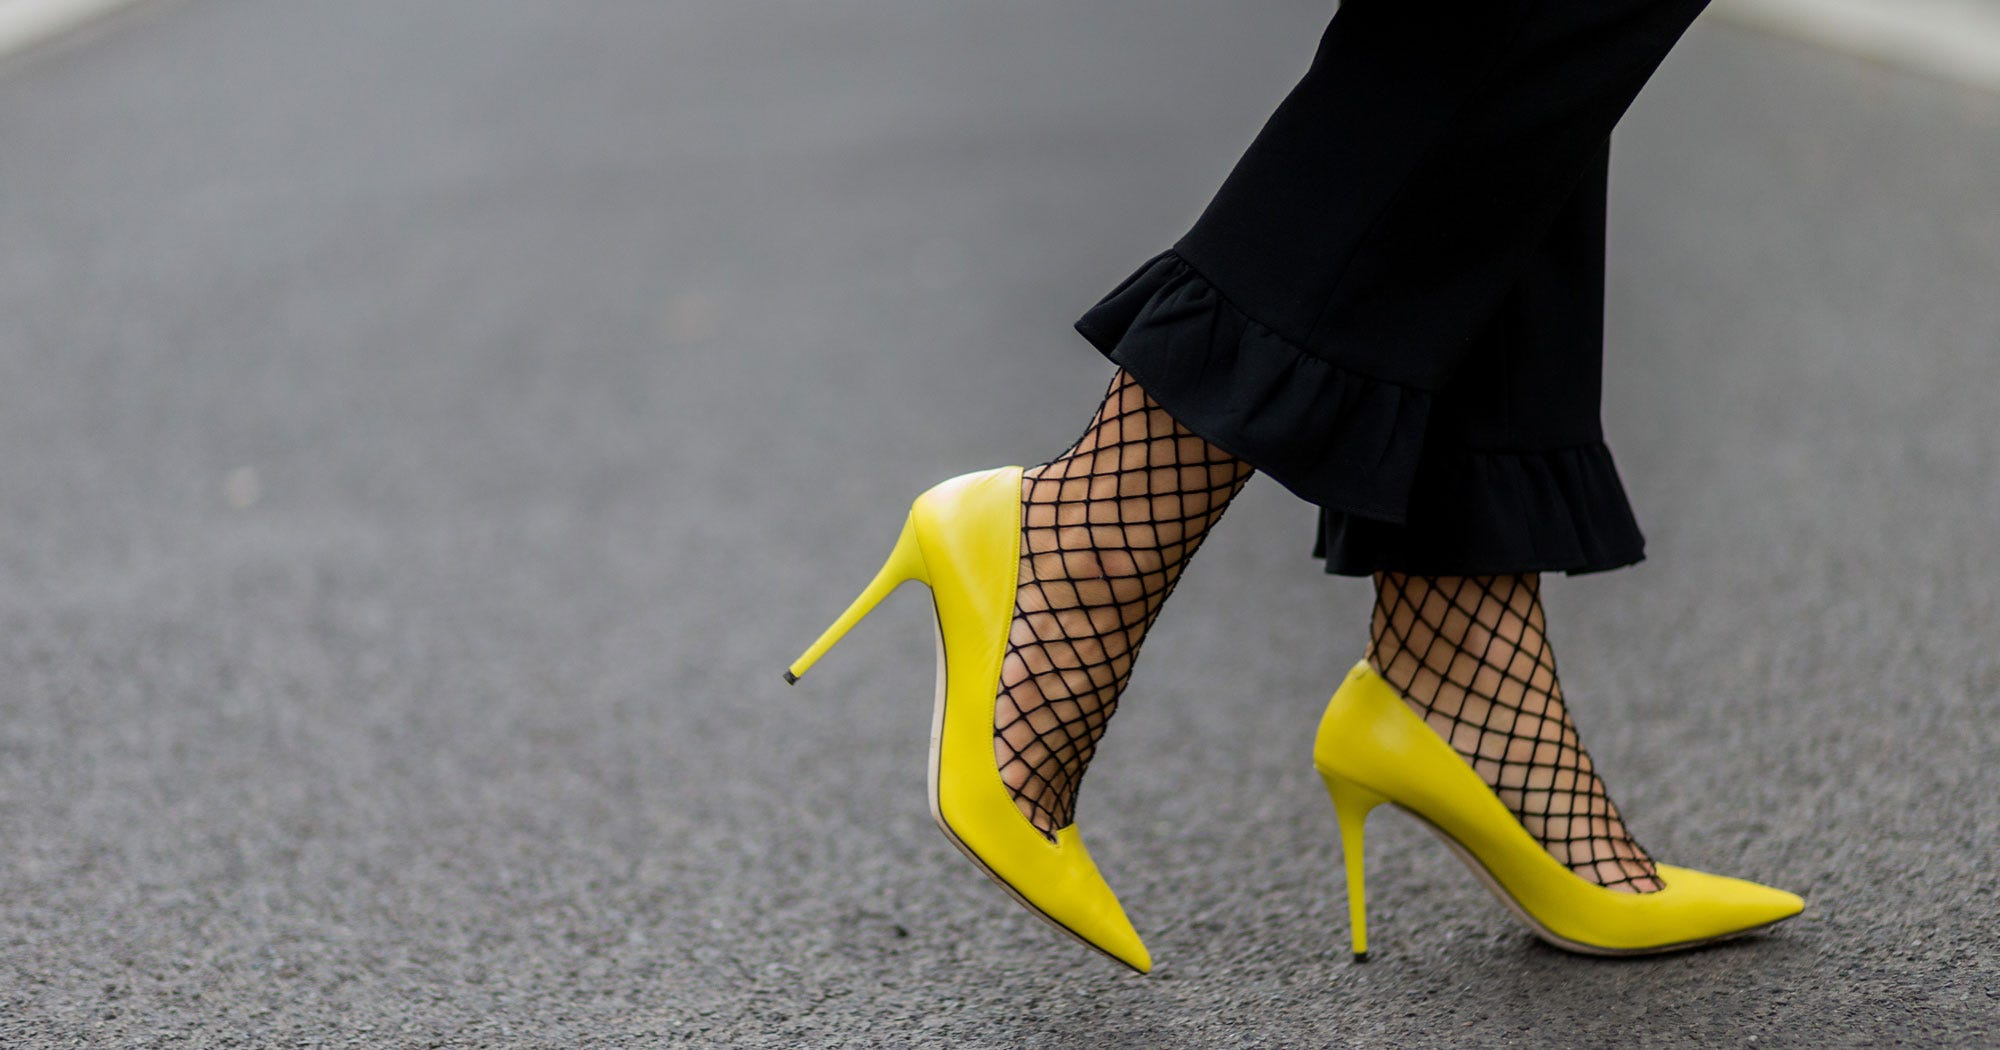 Bet You Didn't Know This About Your High Heels